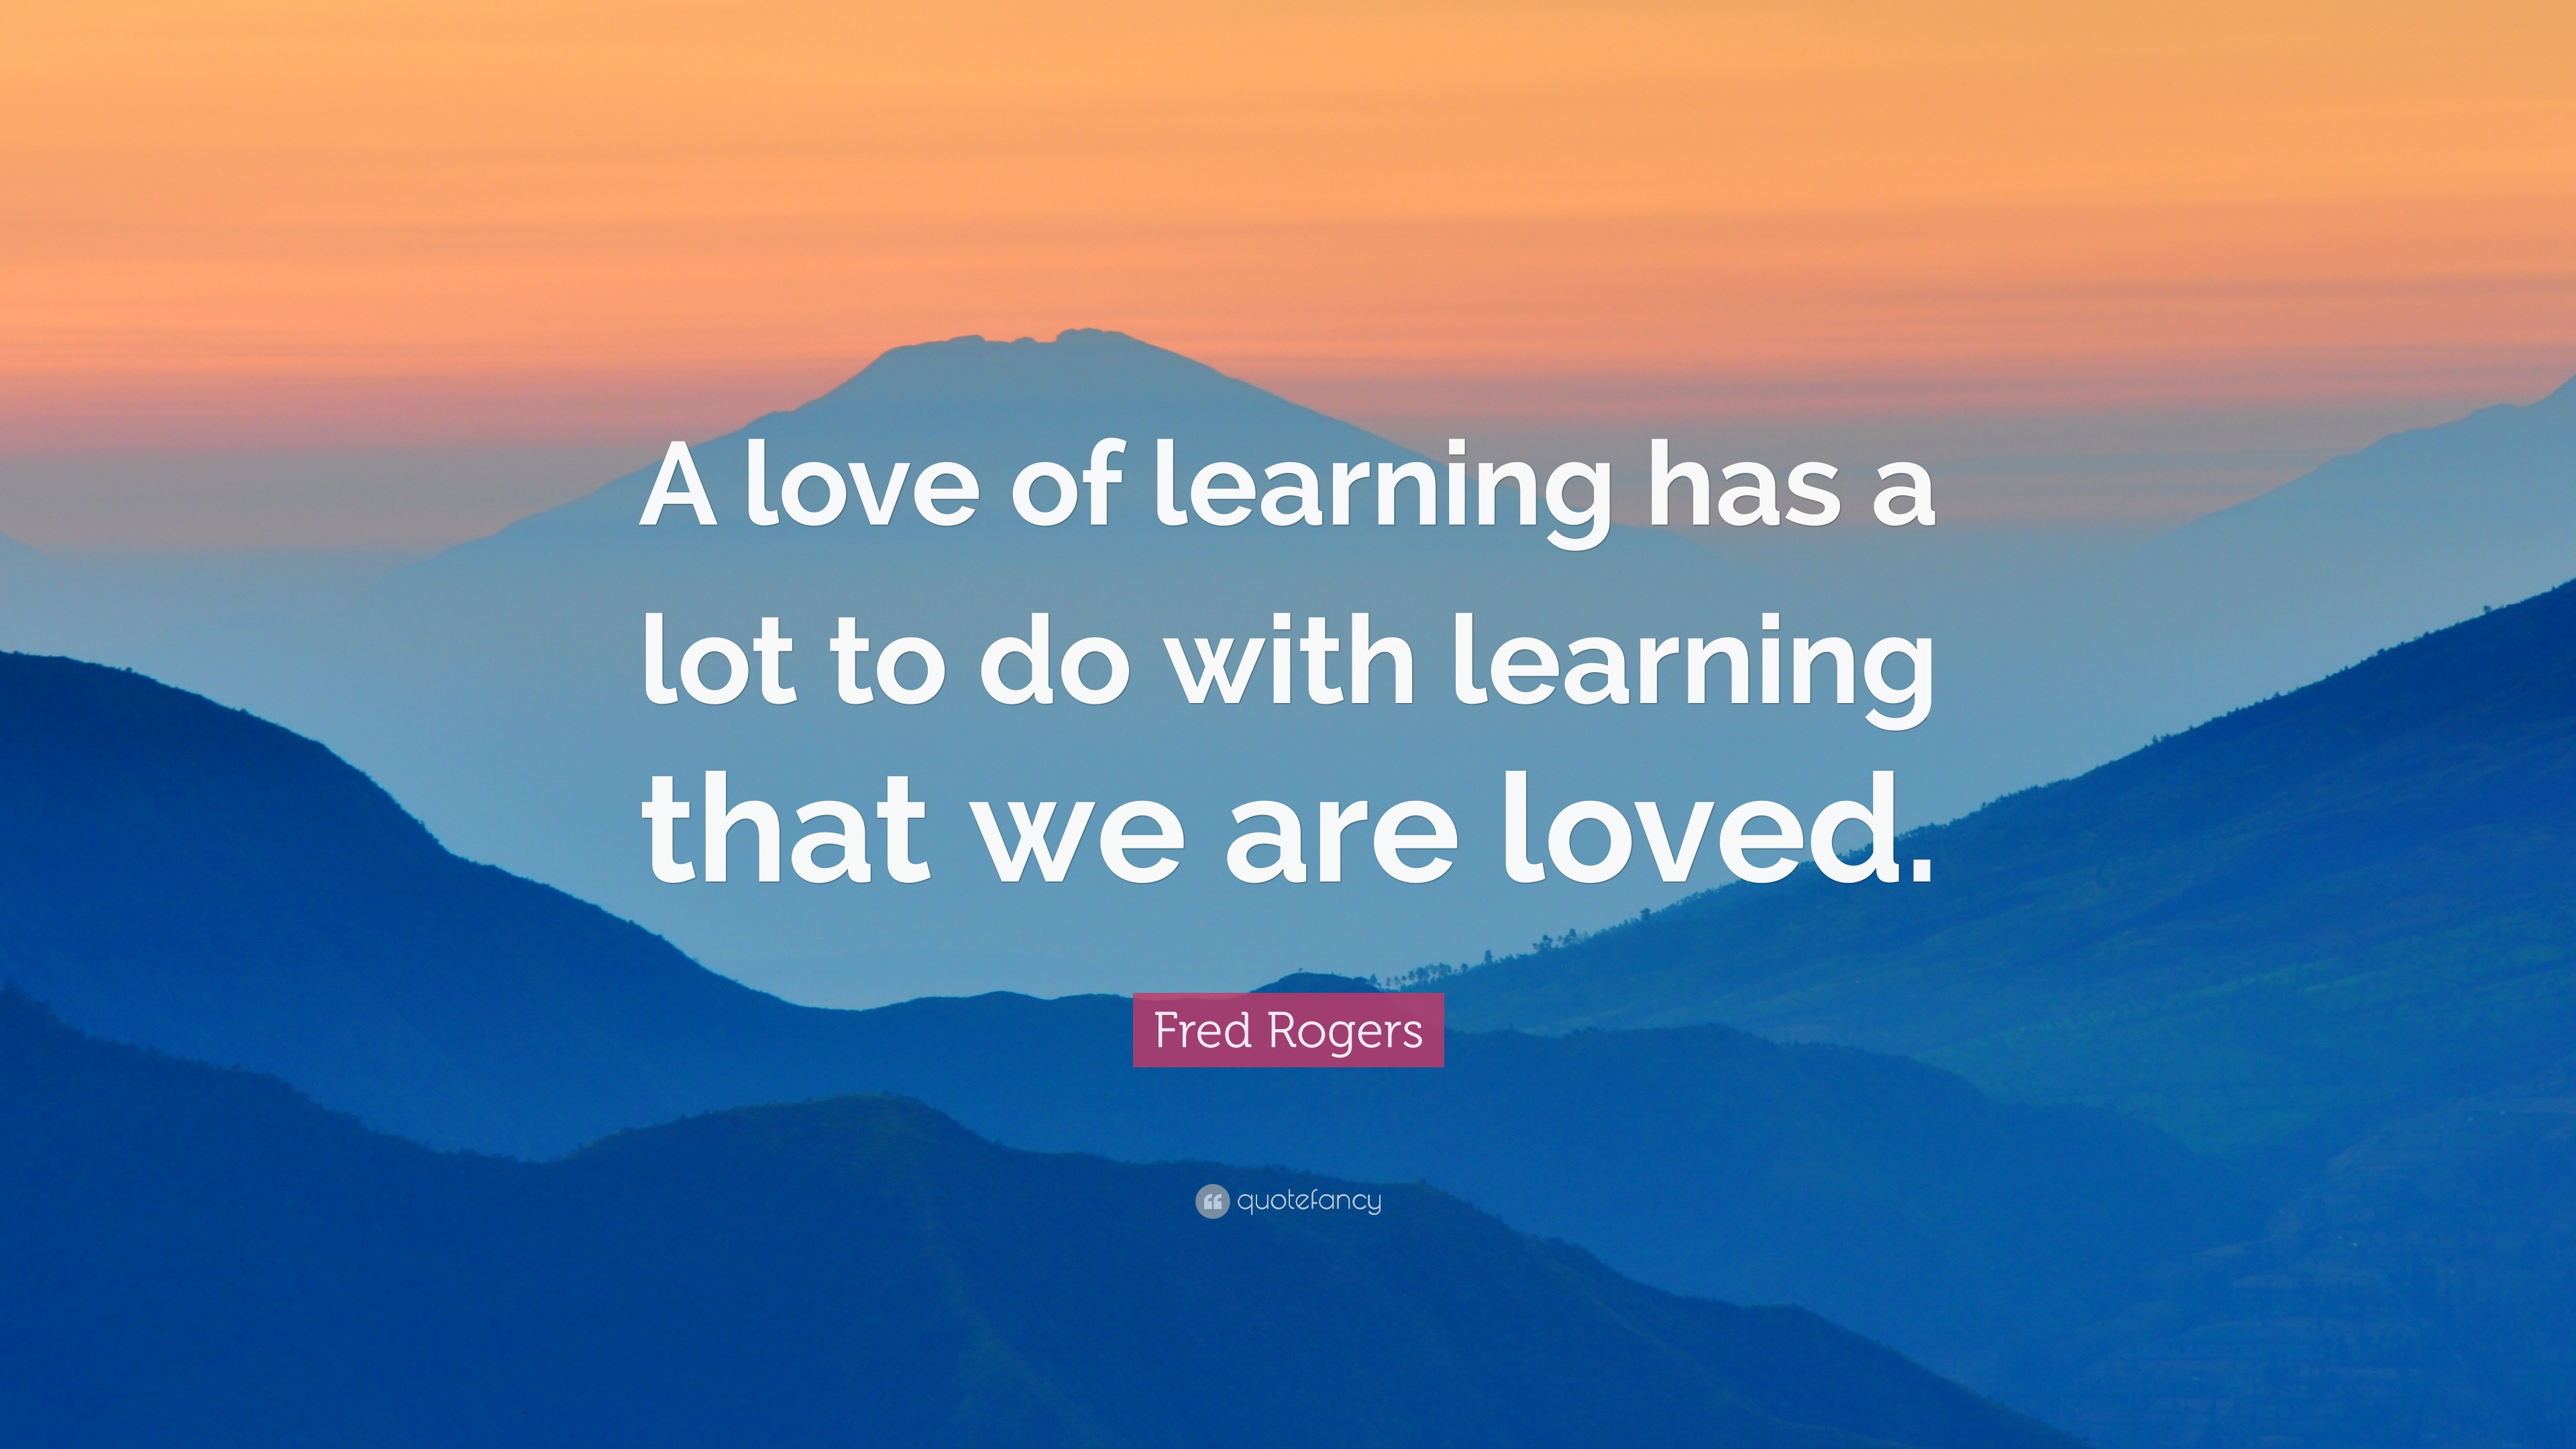 Fred Rogers Quote A Love Of Learning Has A Lot To Do With Learning That We Are Loved 10 Wallpapers Quotefancy